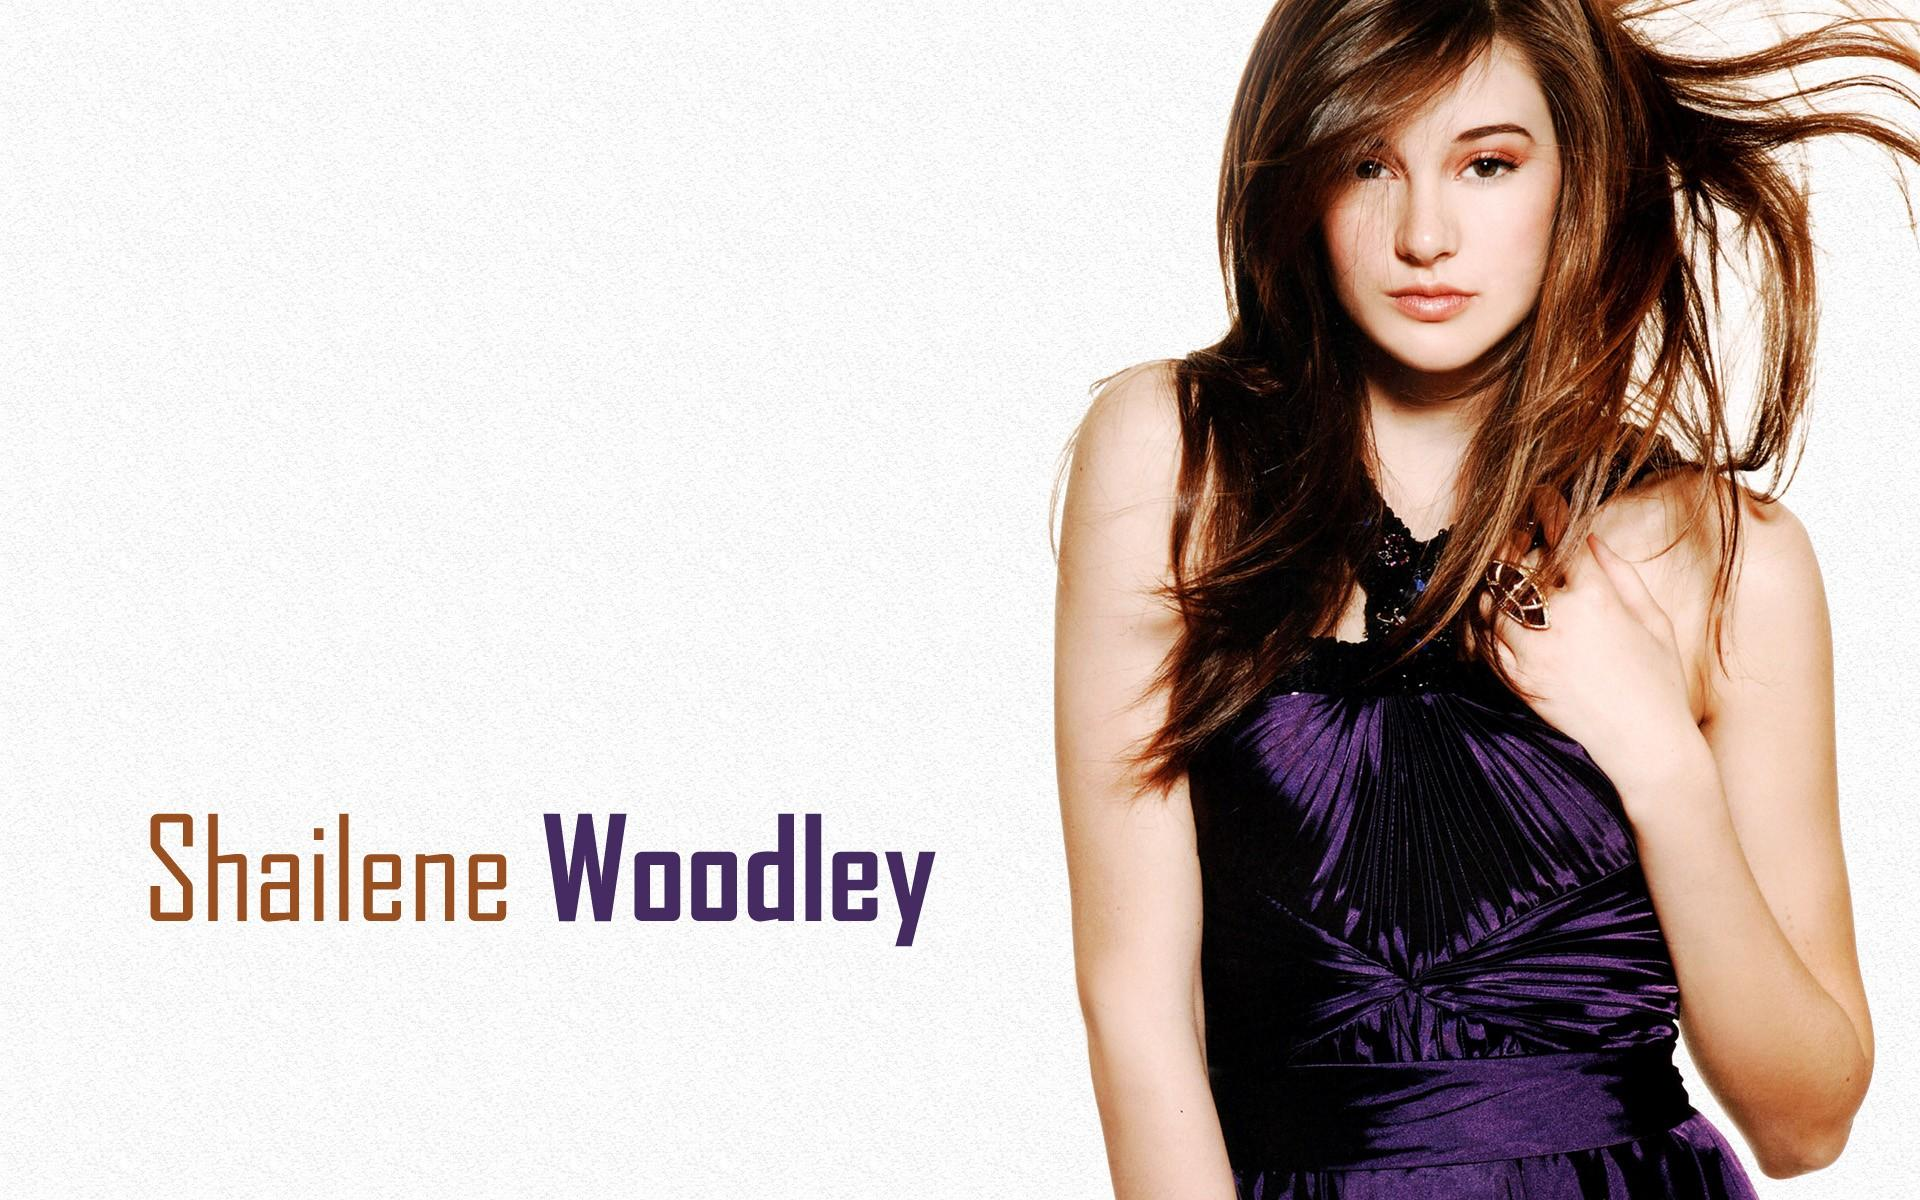 Shailene woodley wallpapers high resolution and quality download shailene woodley images thecheapjerseys Choice Image